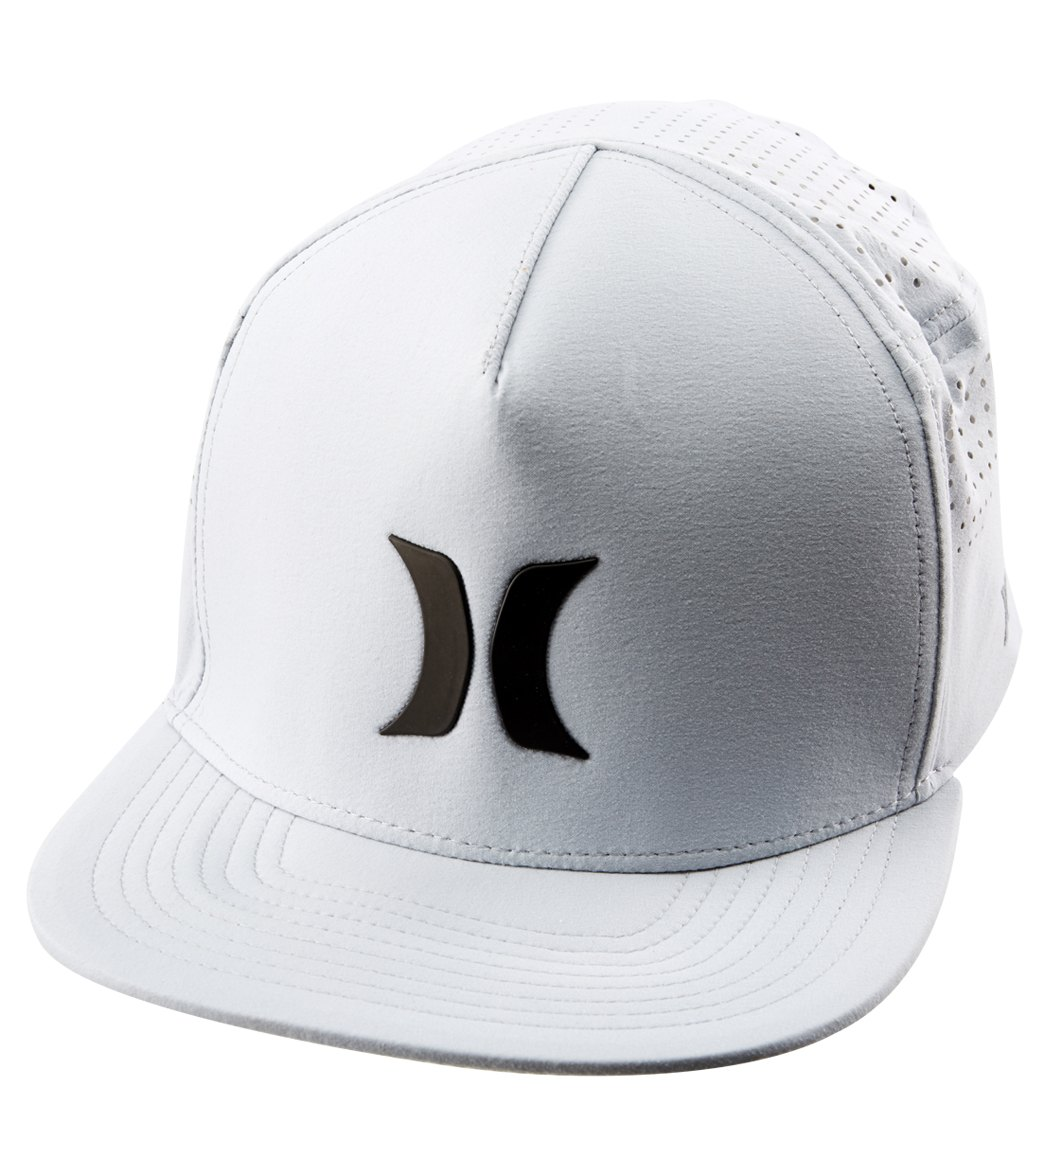 9996dc7a6c3 Hurley Men s Phantom Flyer Hat at SwimOutlet.com